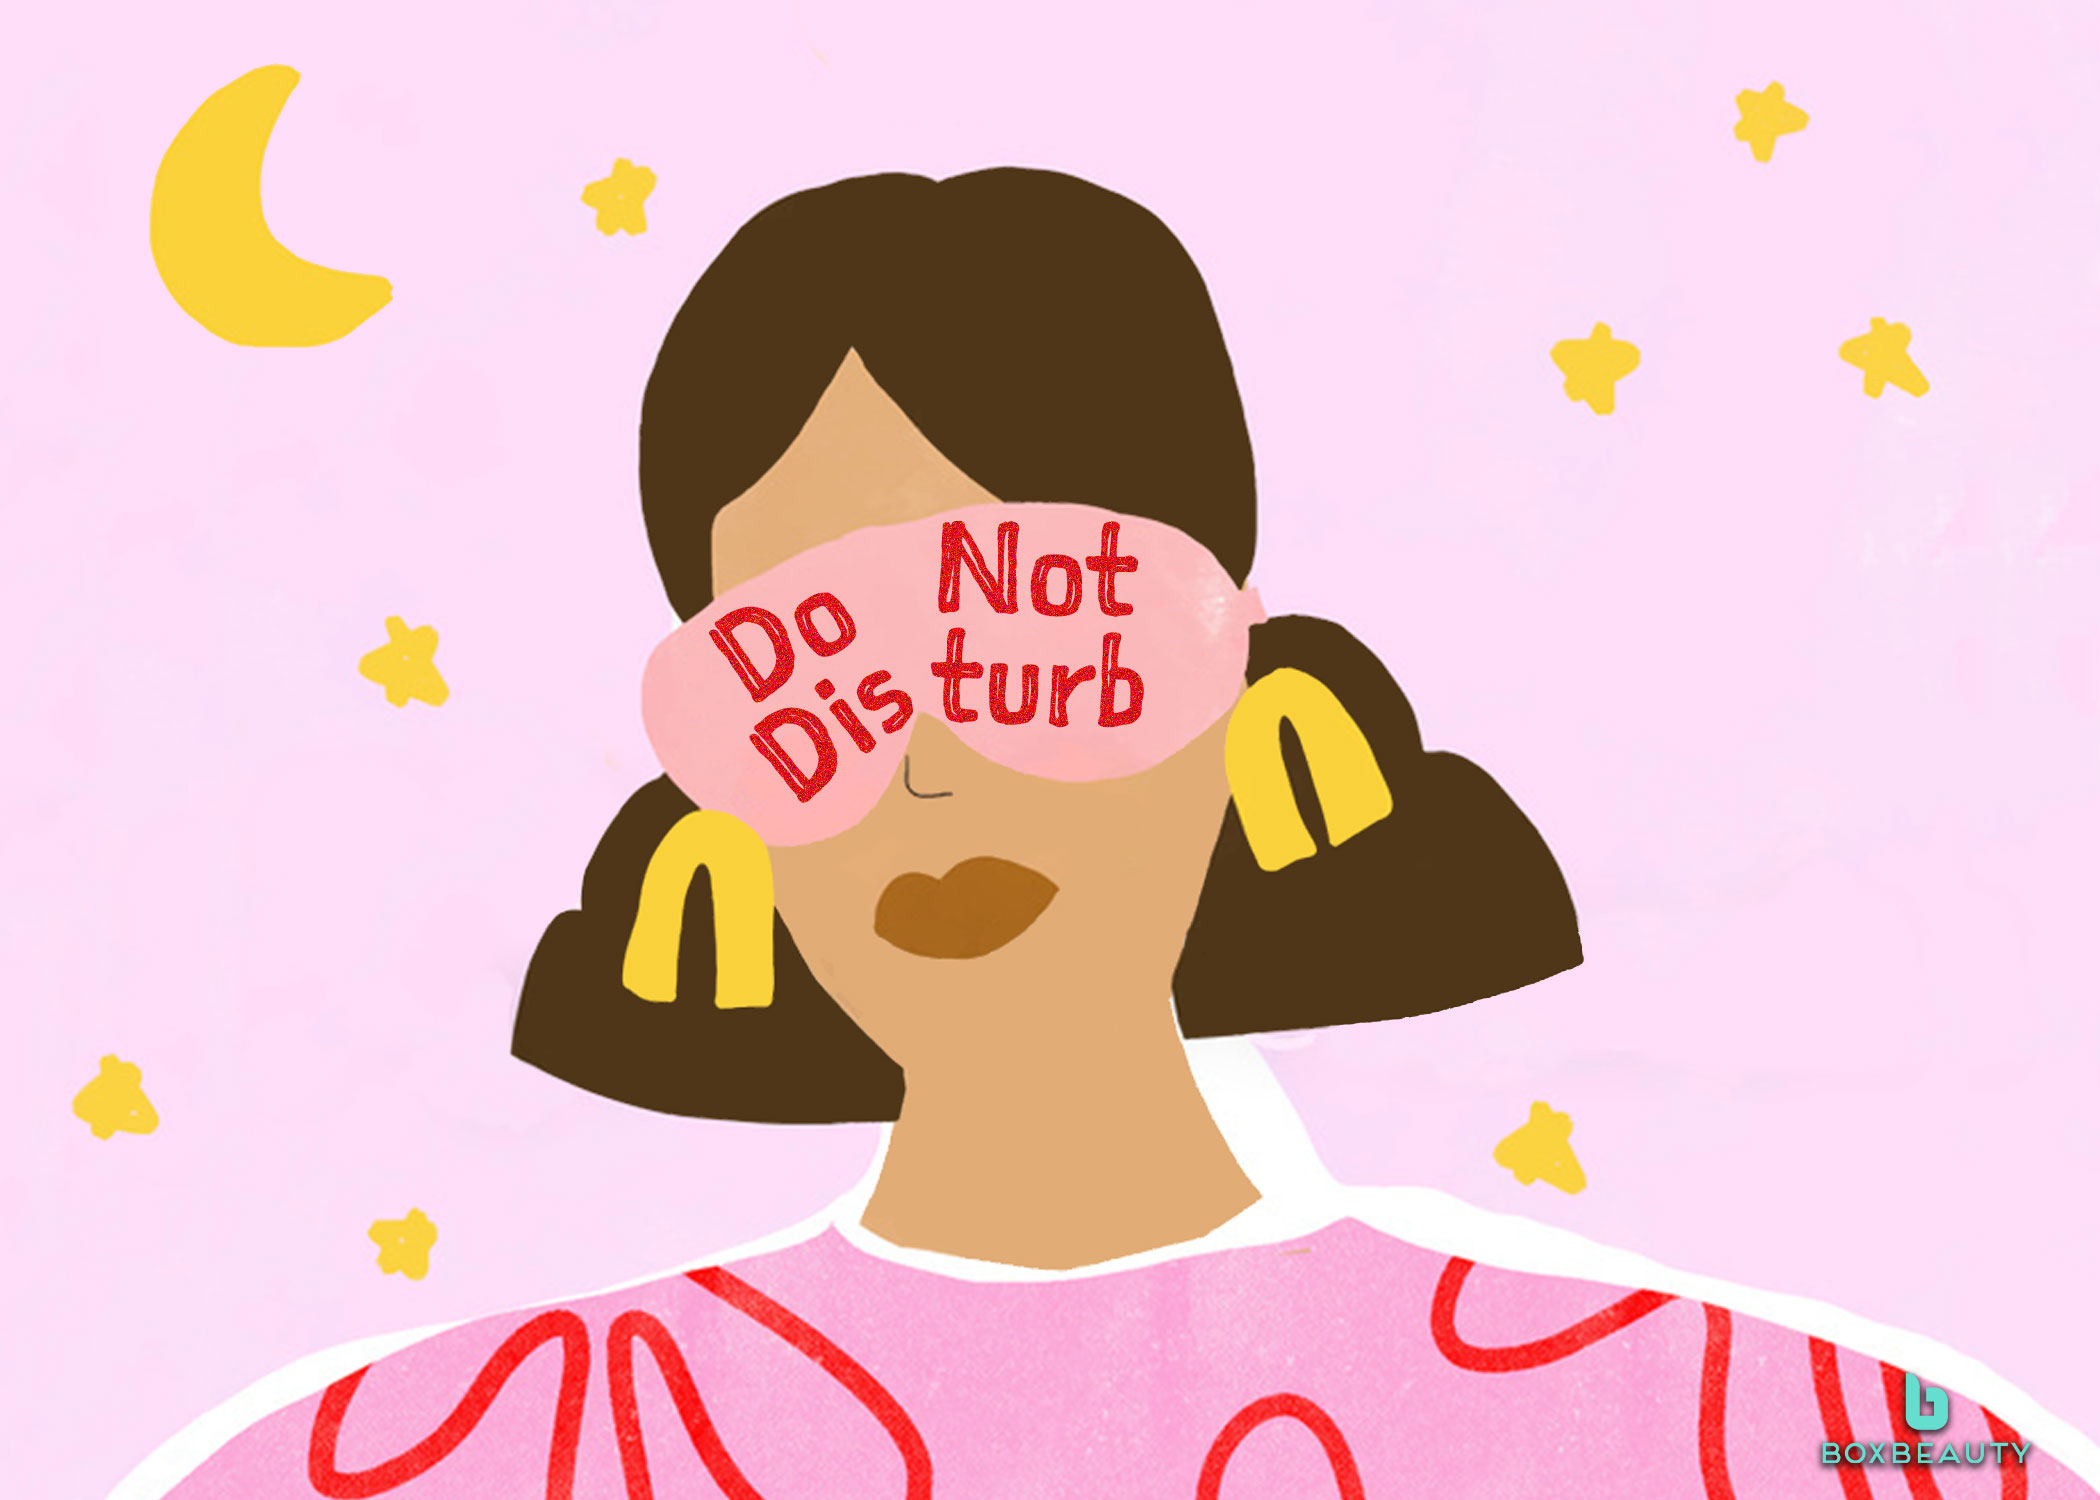 Do Not Disturb: How to Make the Most Out of Your Beauty Sleep